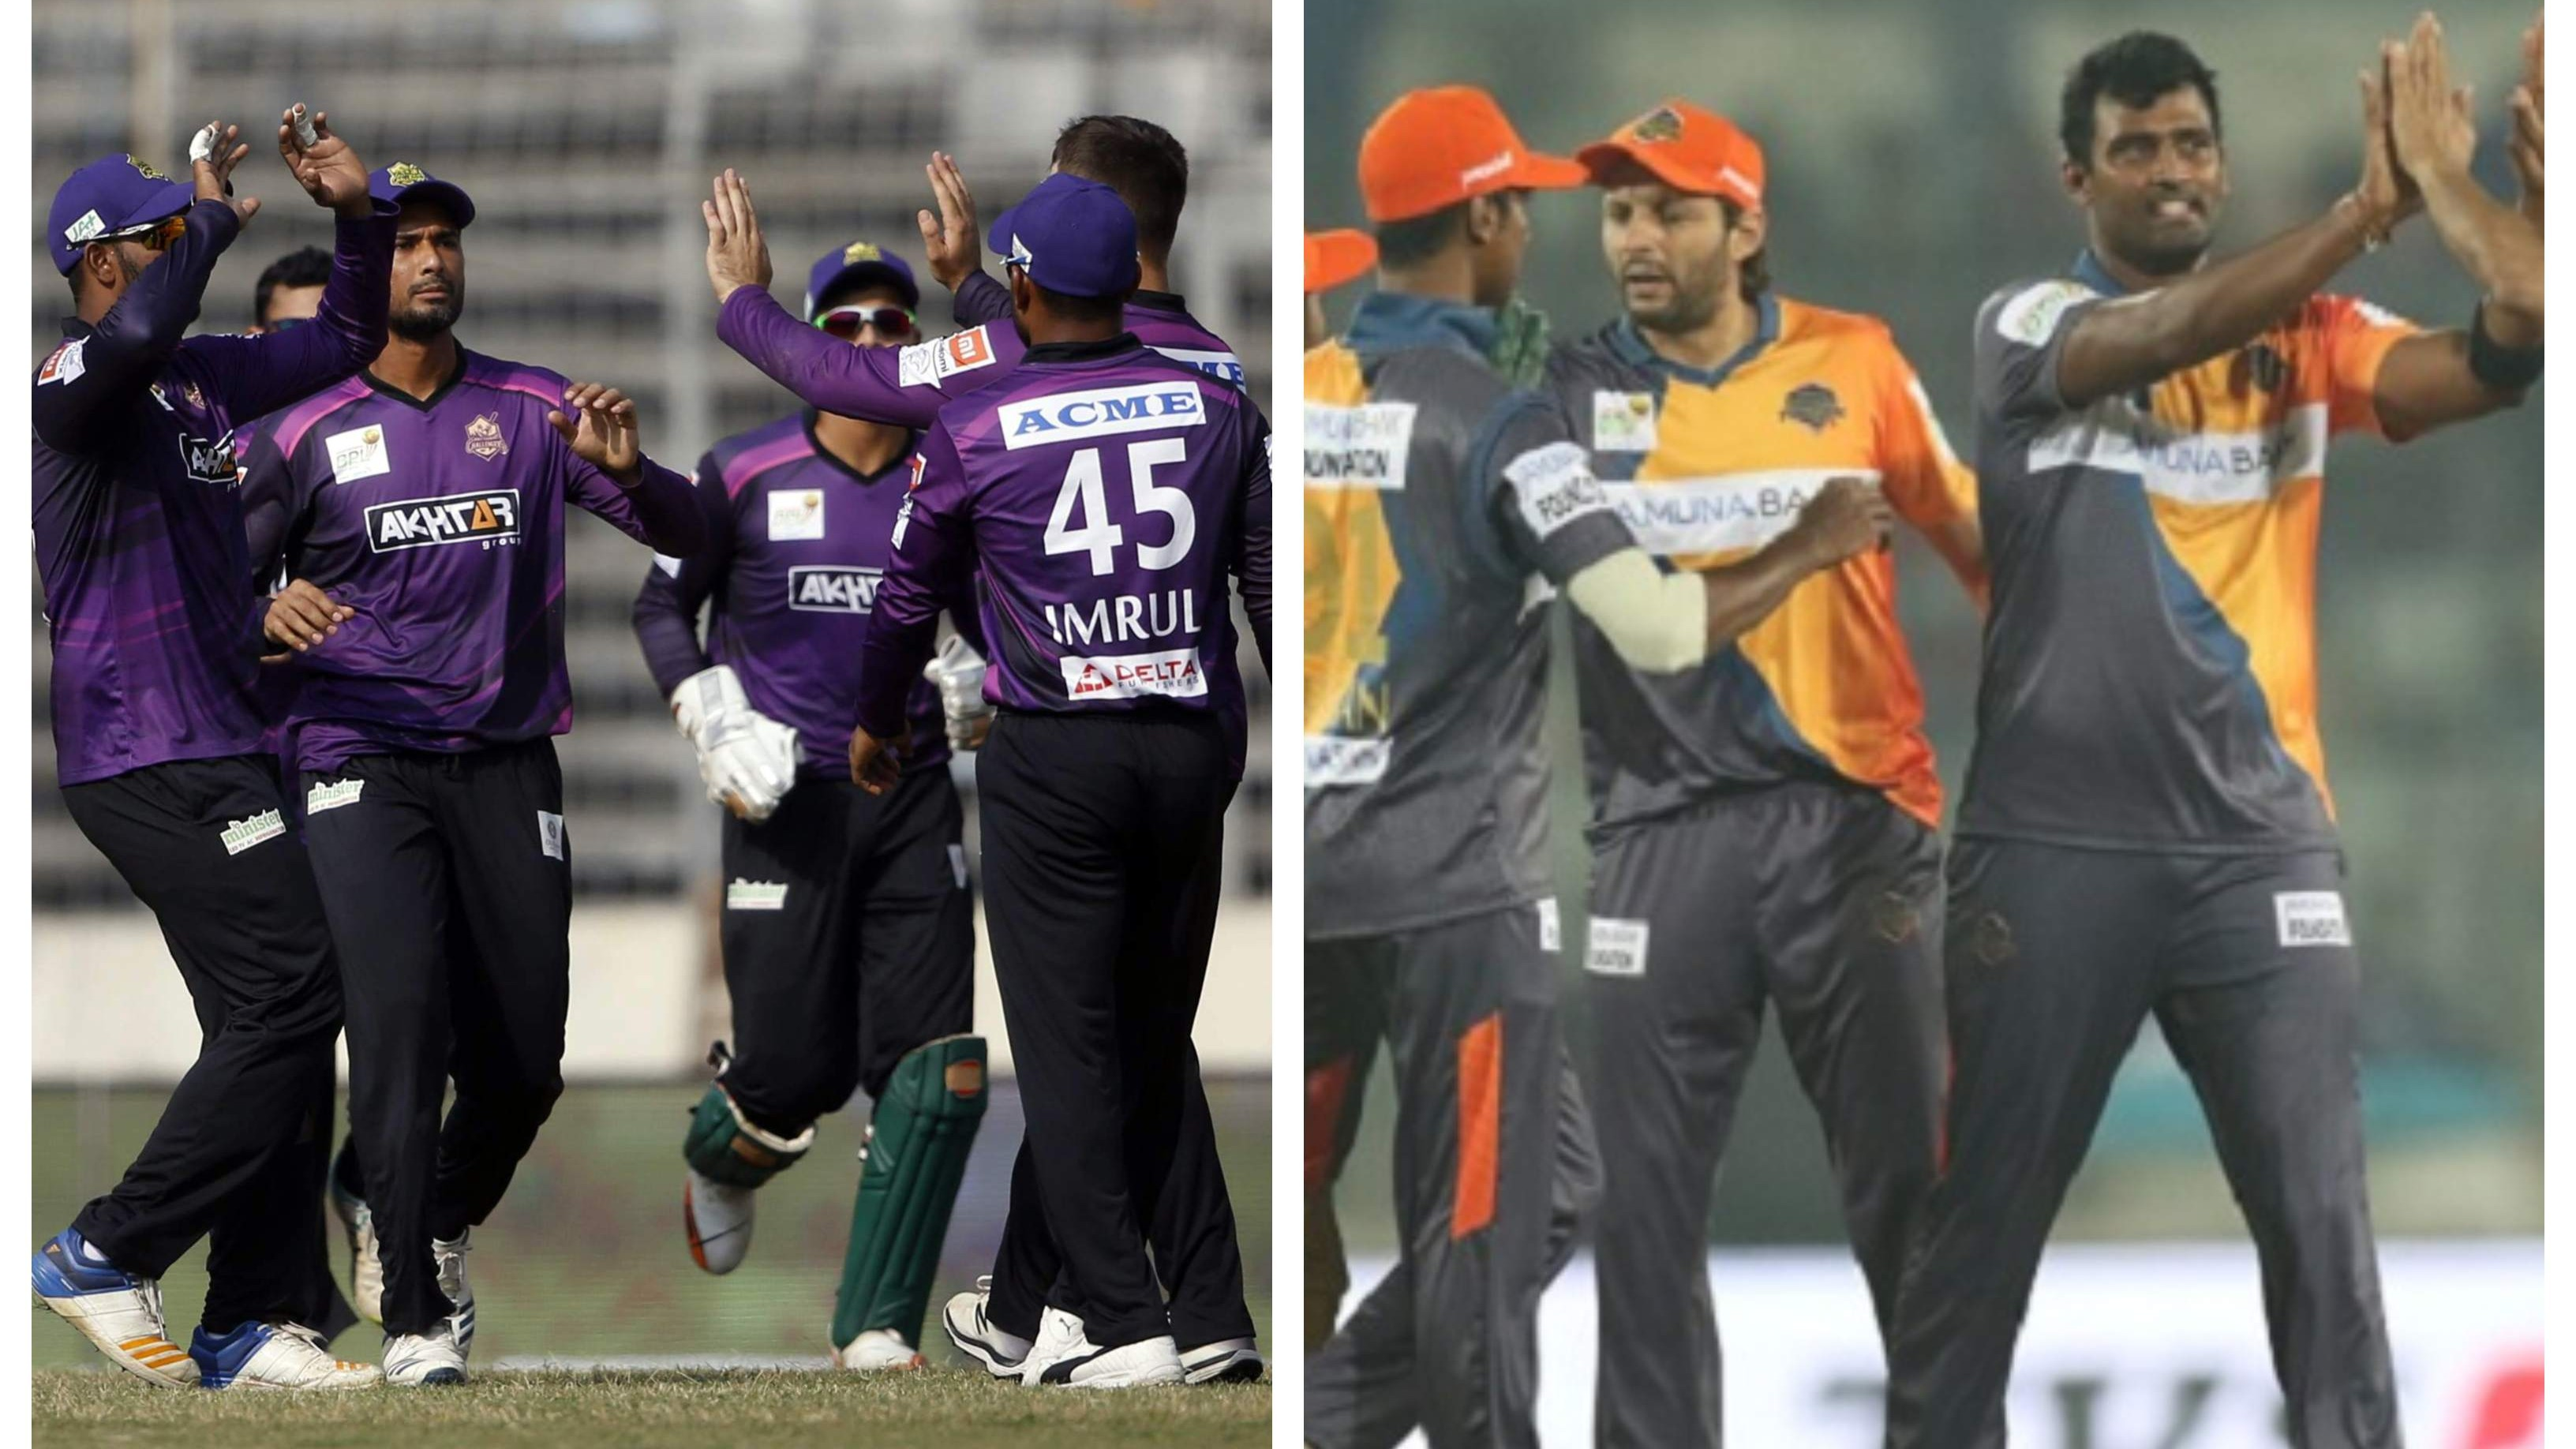 BPL 2019-20: Challengers defeat Rangers by 6 wickets; Thunder lost to Platoon by 24 runs